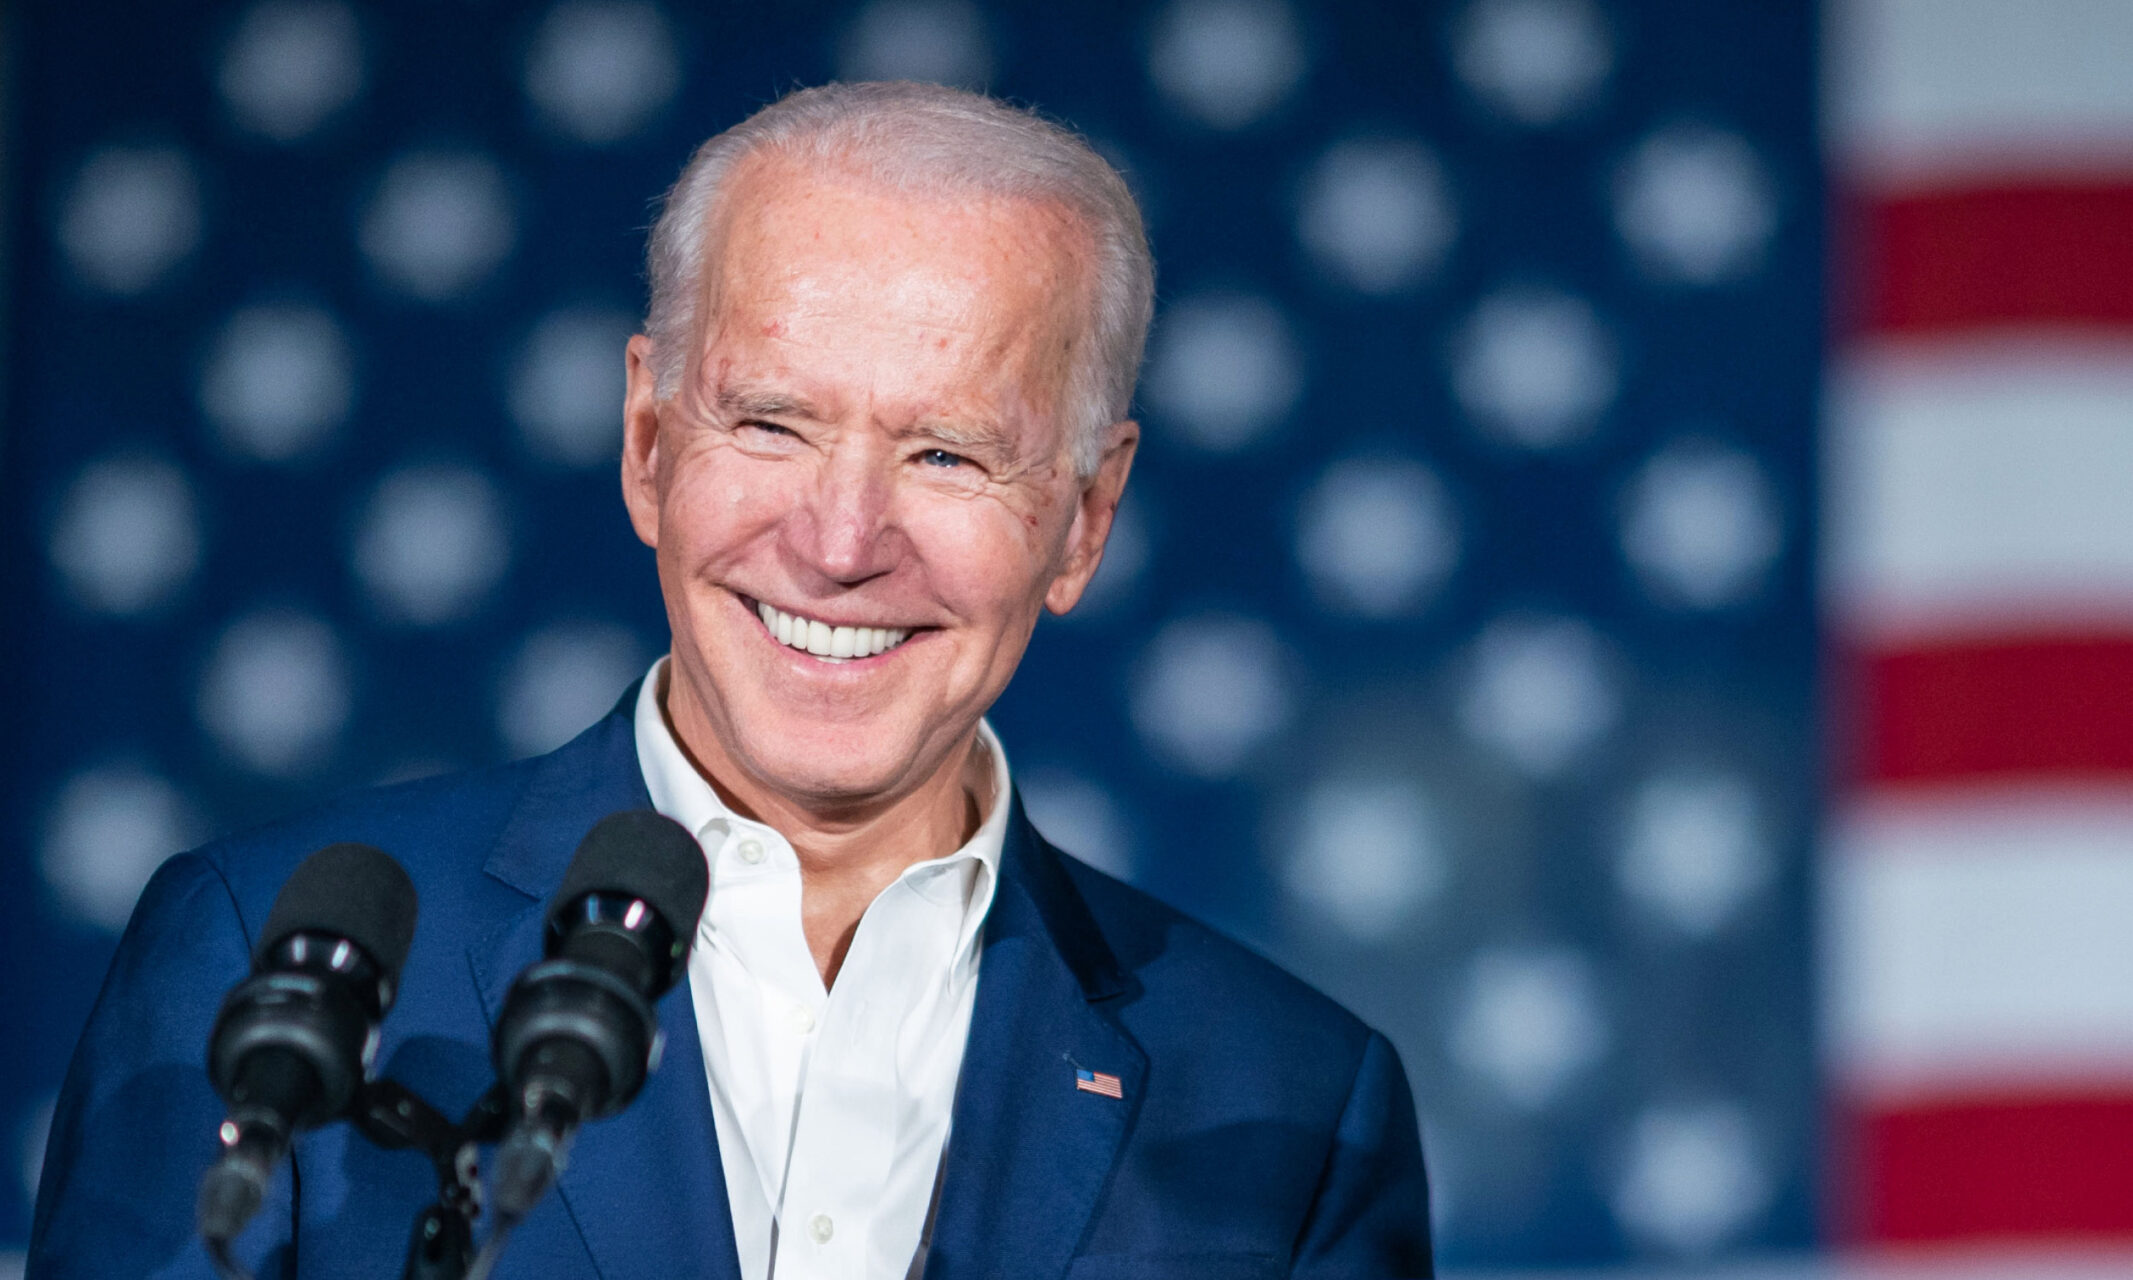 On January 20, Joe Biden was sworn in as the 46th President of the United States